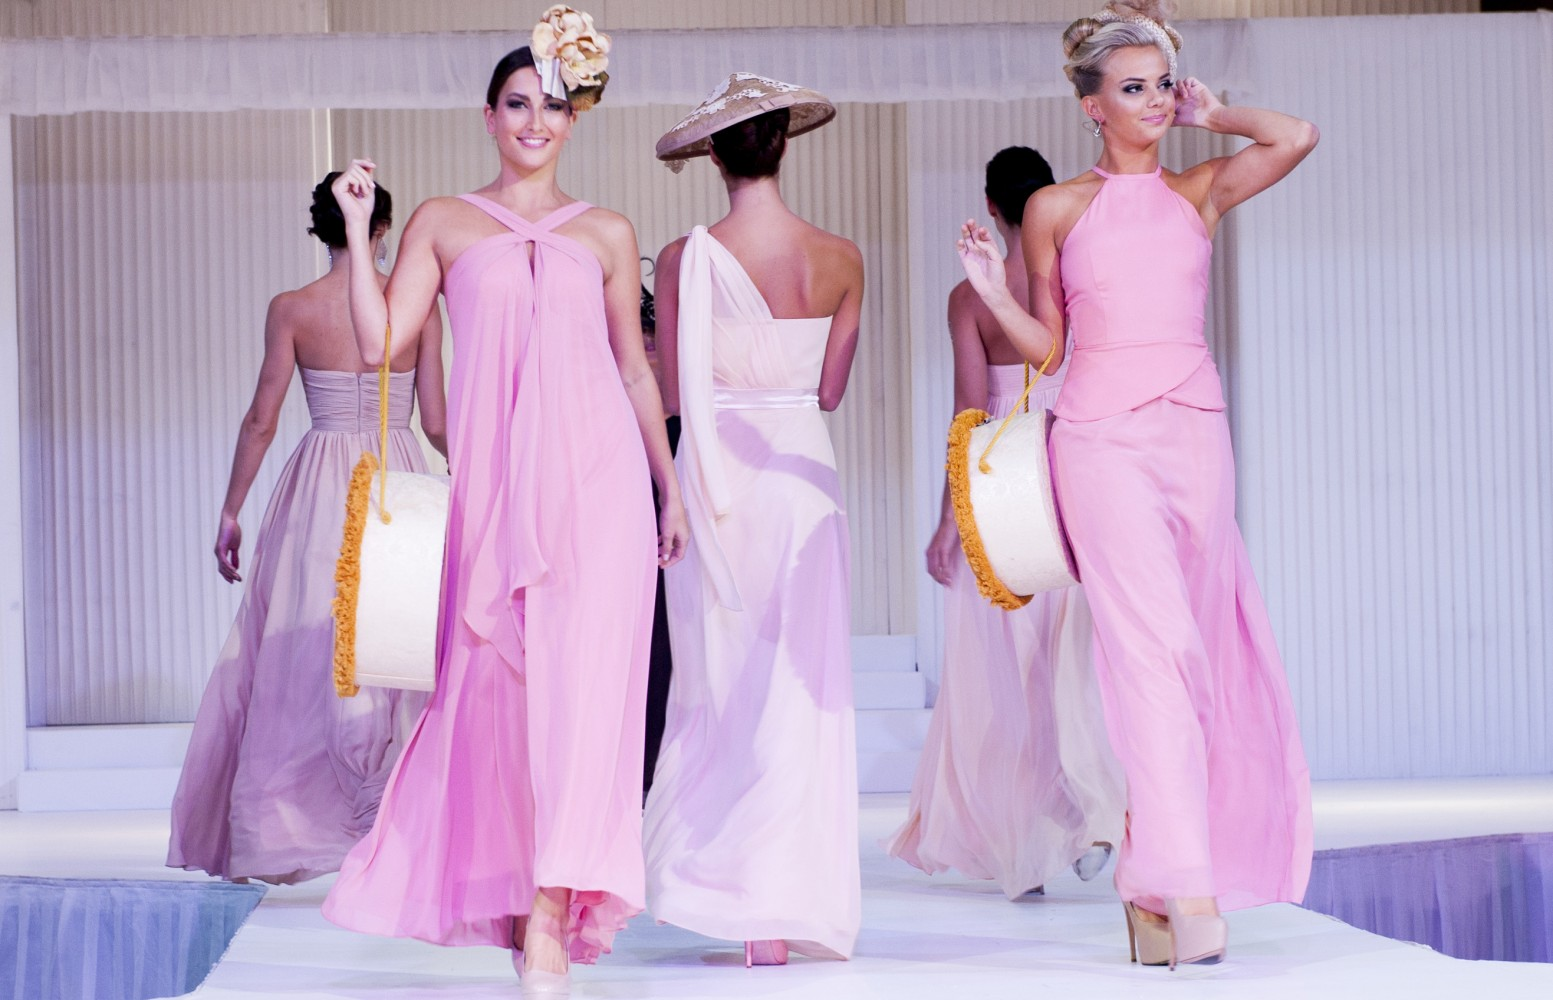 sydney bridal expo natasha millani bridesmaid dresses pink